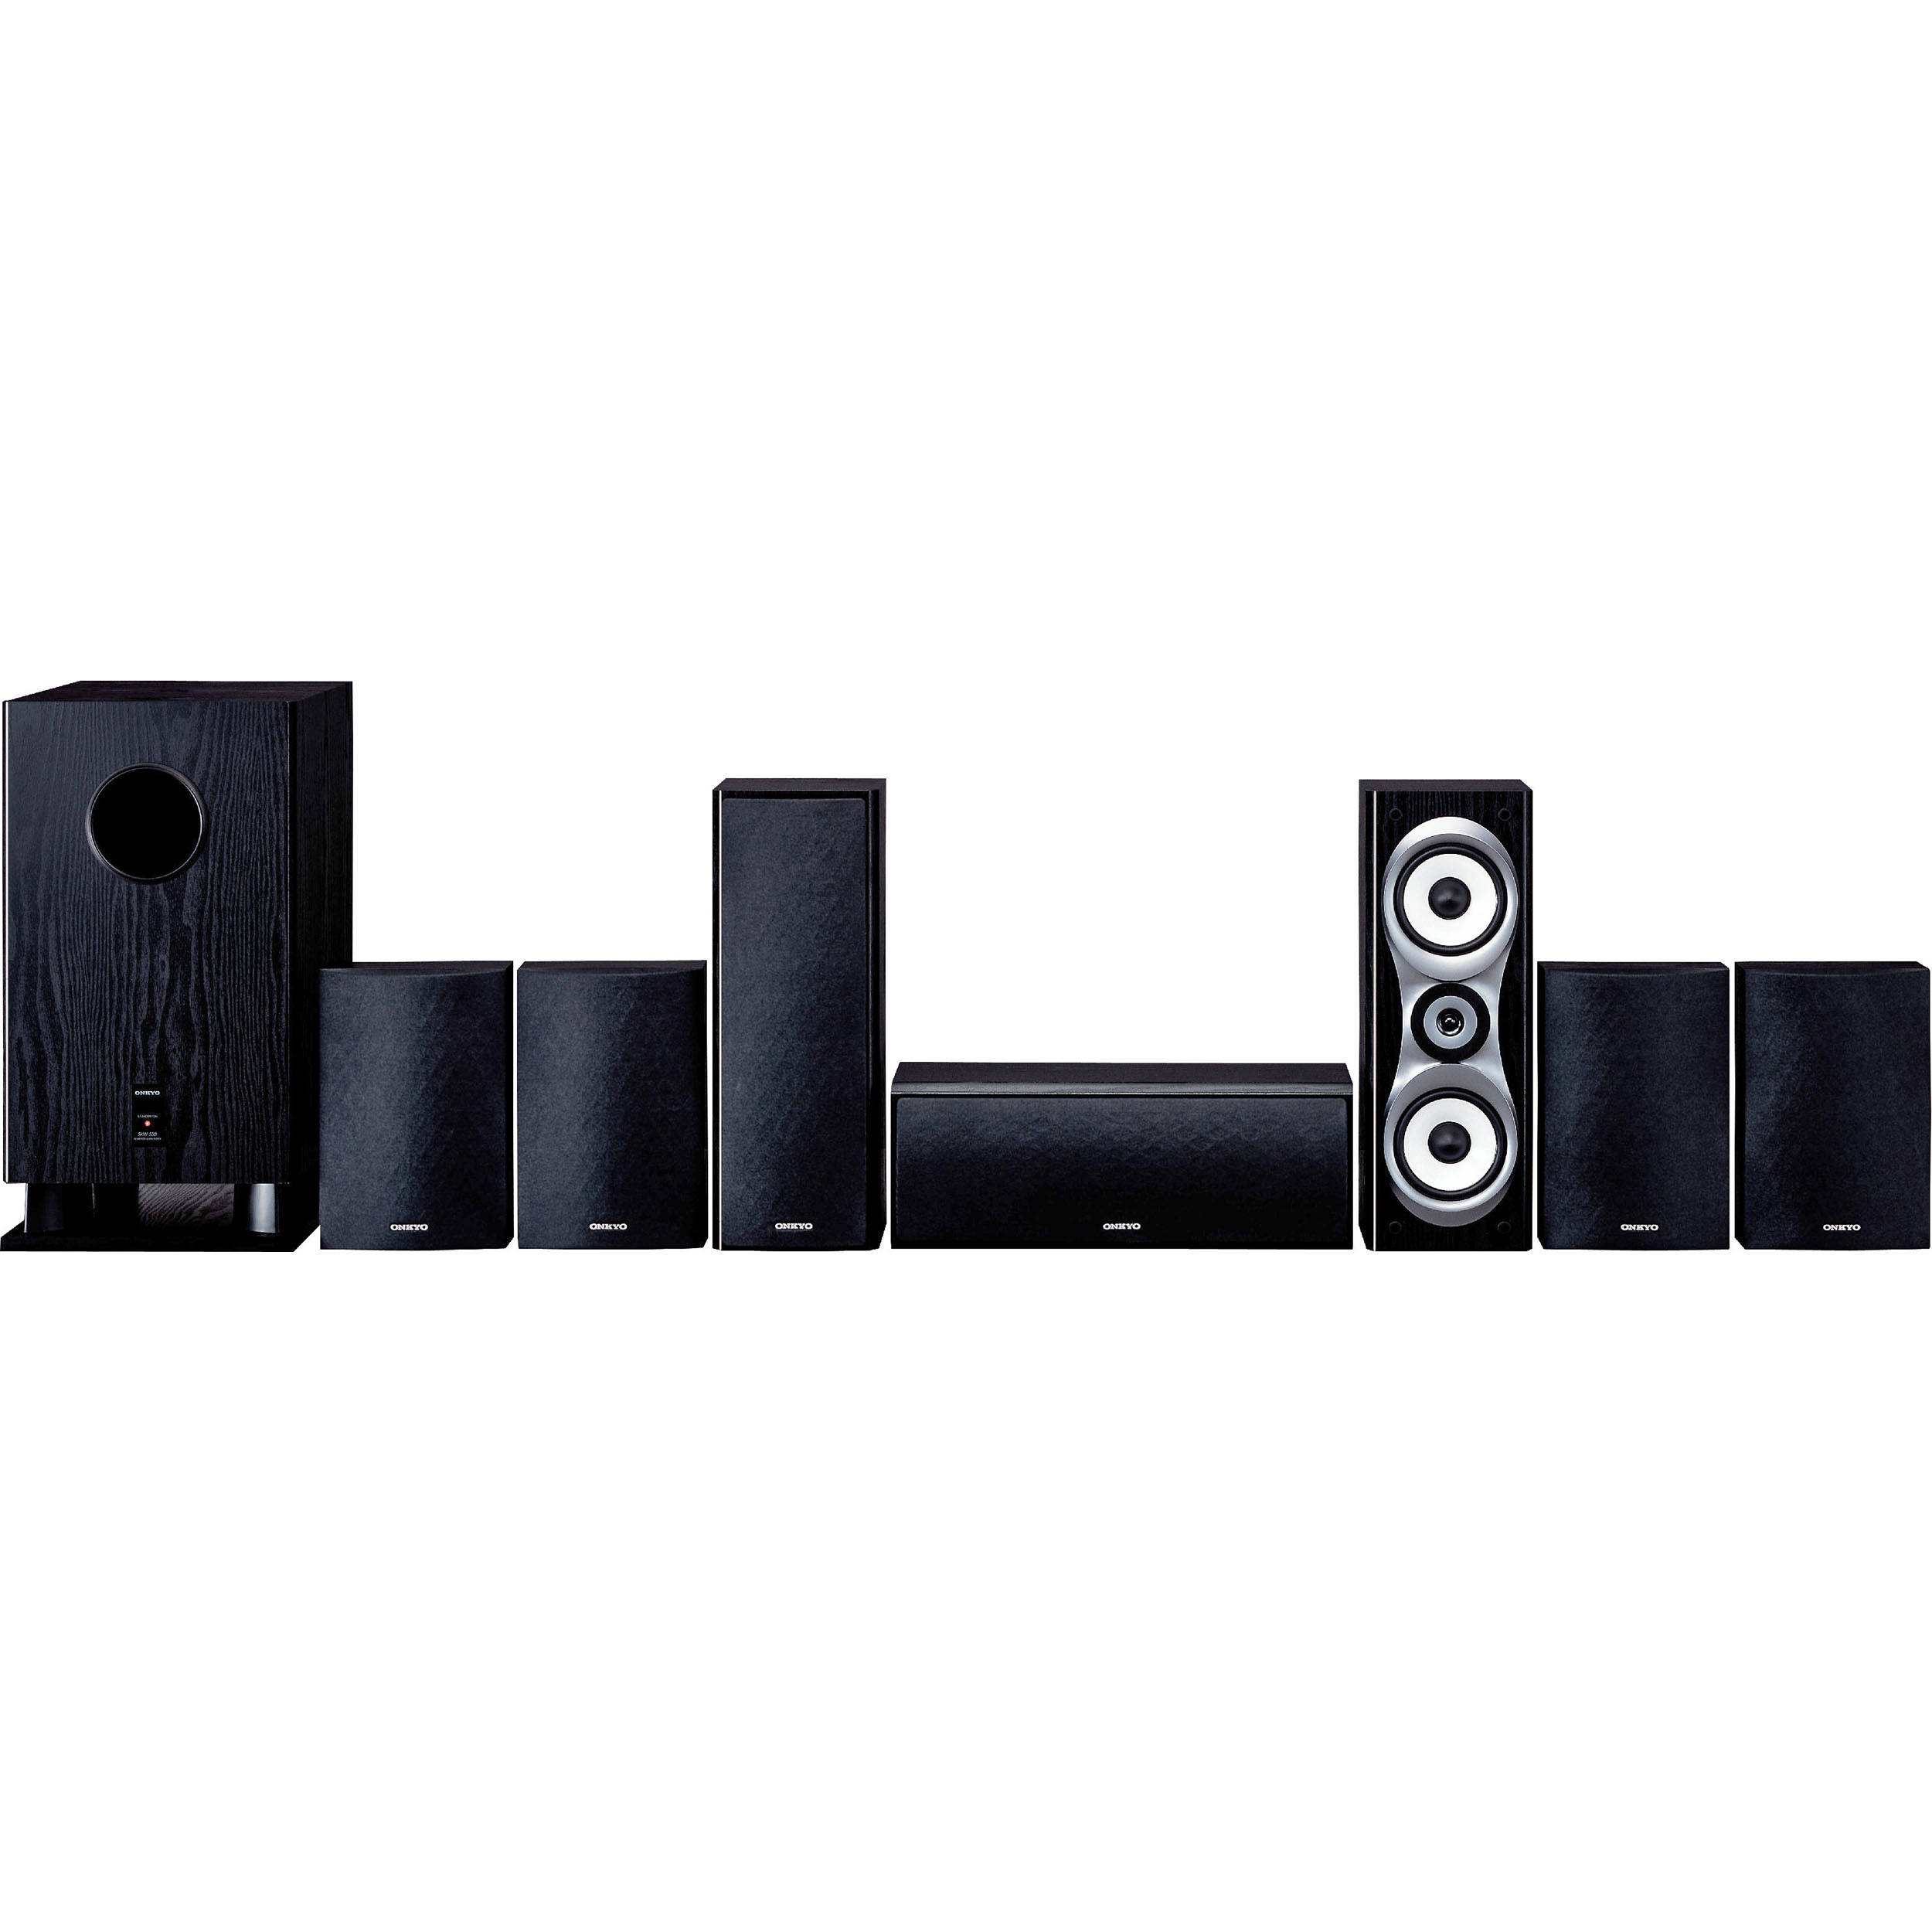 onkyo sks ht540 7 1 home theater surround sound system sks ht540. Black Bedroom Furniture Sets. Home Design Ideas